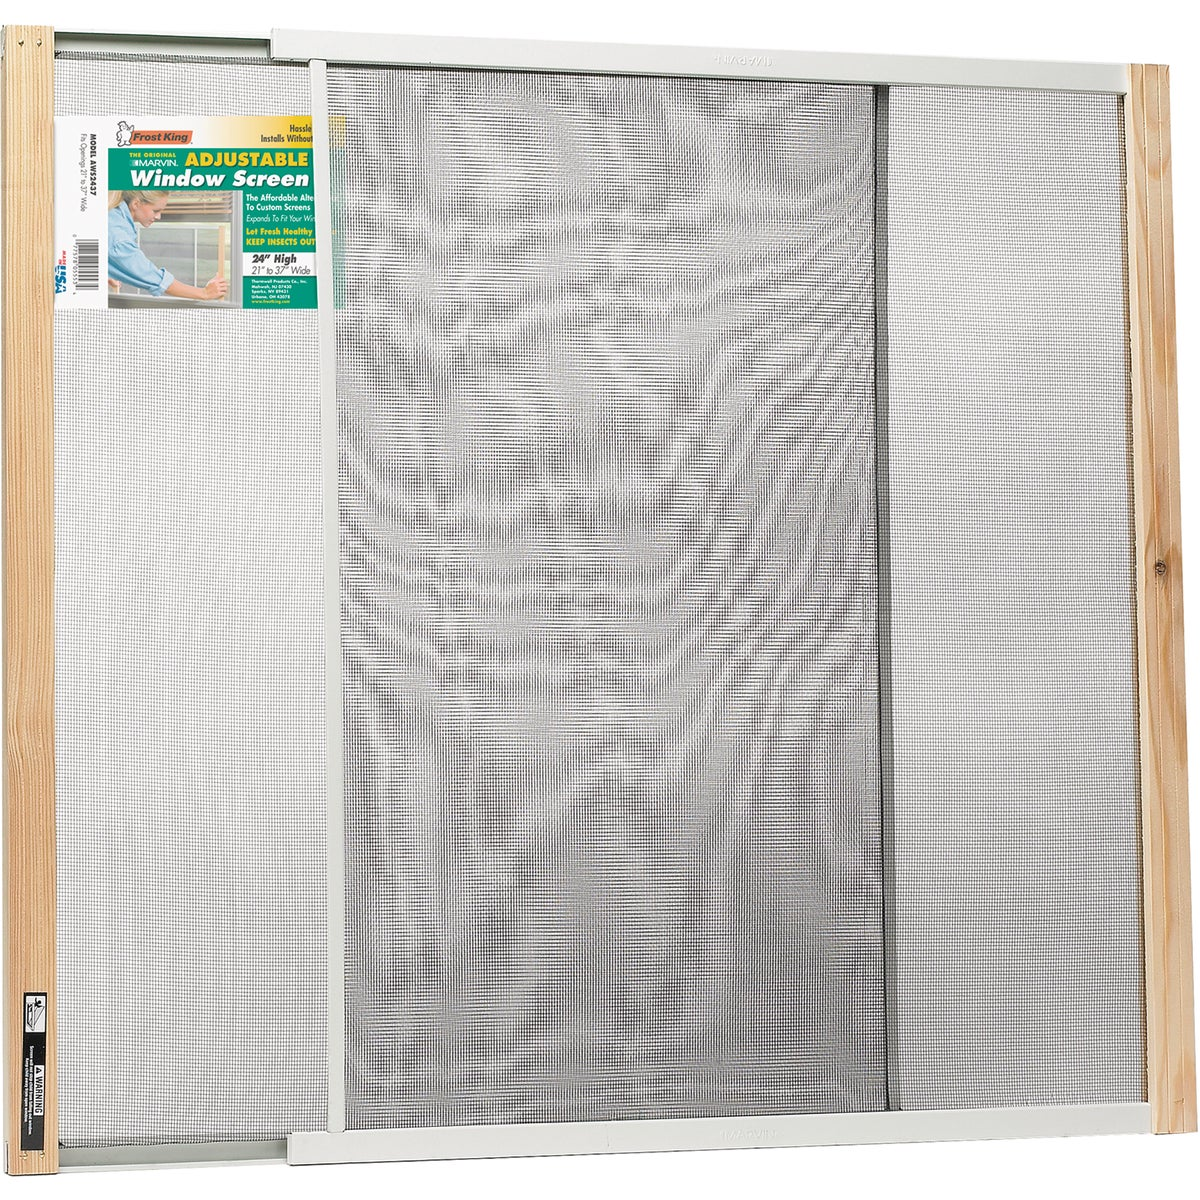 ADJUSTABLE WINDOW SCREEN - AWS2437 by Thermwell Prods Co